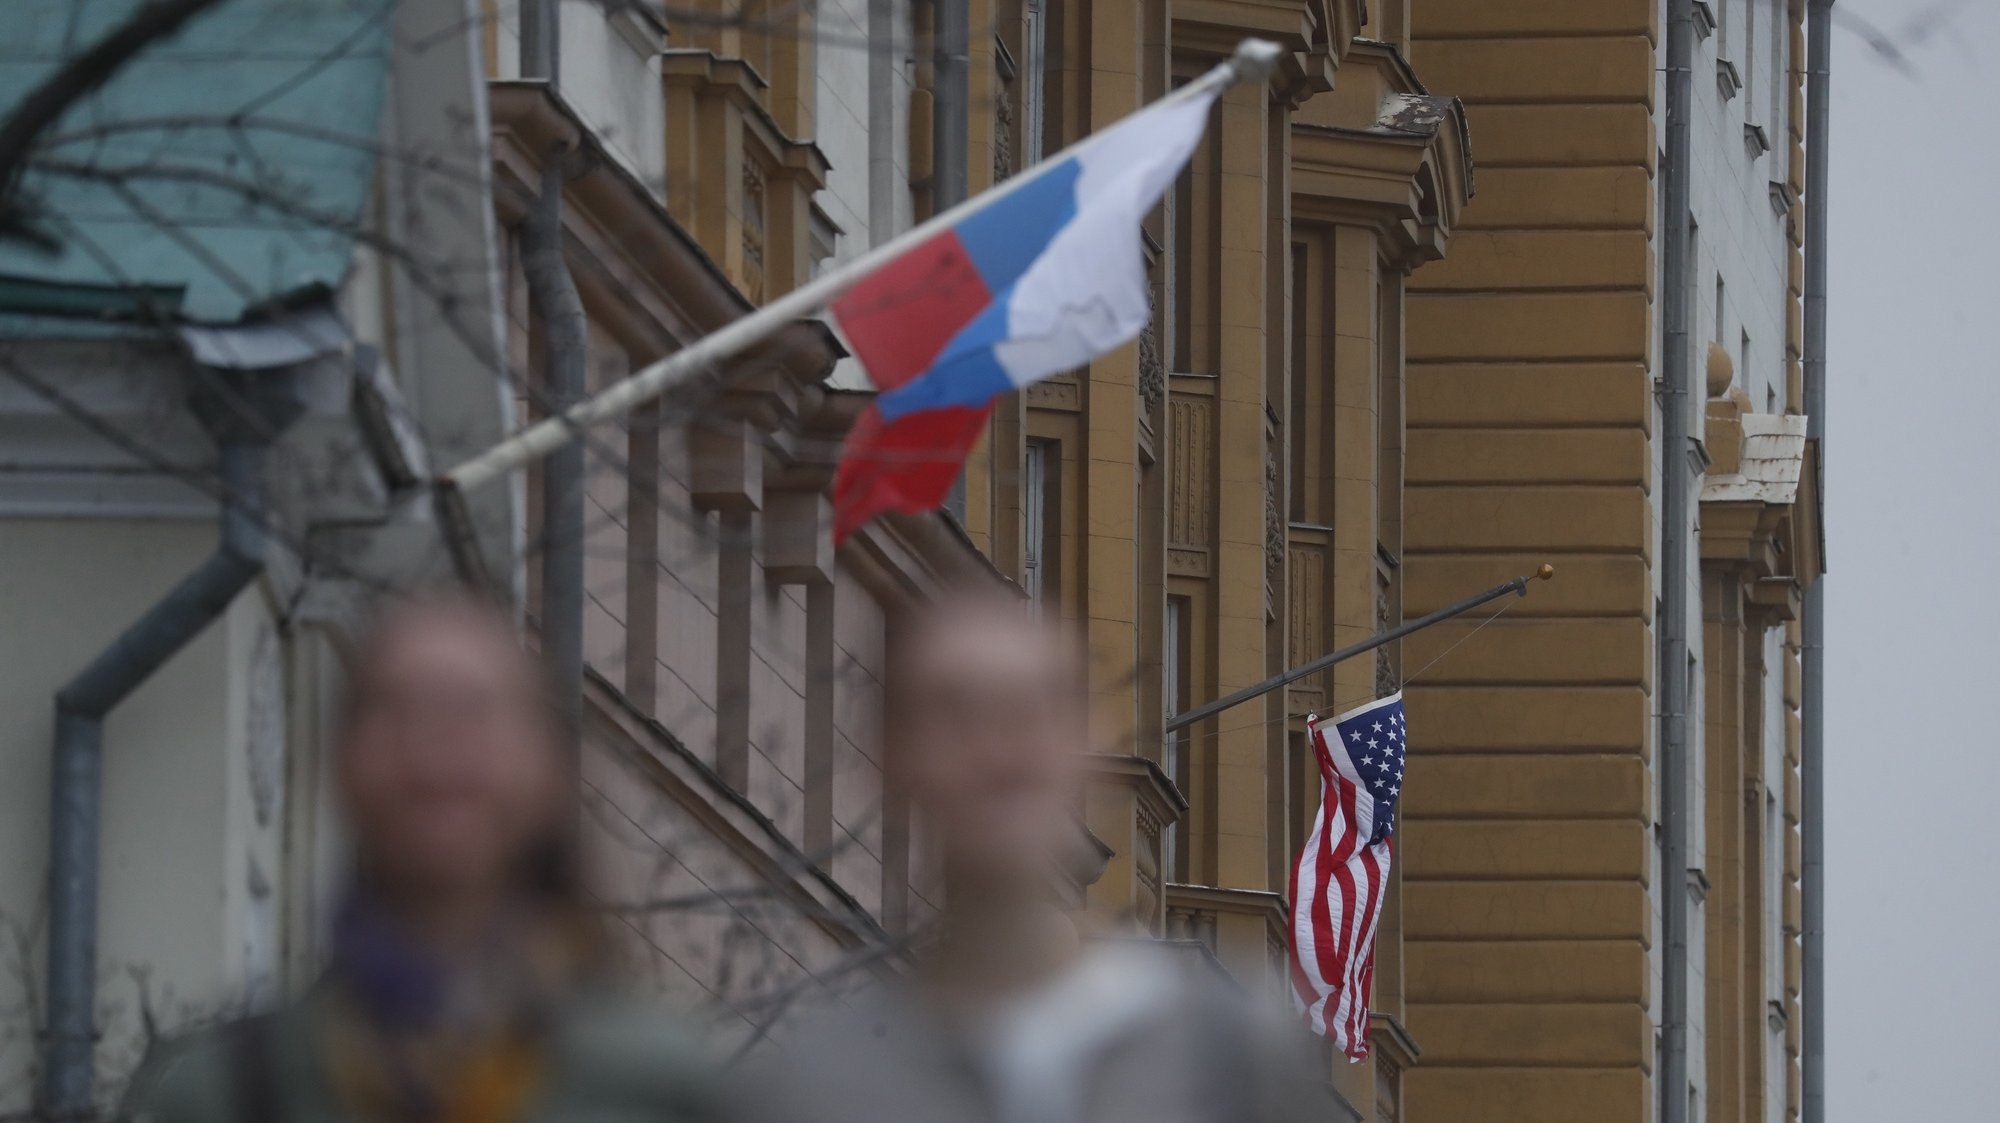 epa09137644 A Russian flag (L) next to the US embassy building in Moscow, Russia, 15 April 2021. Tensions have escalated between the US and Russia following the new sanctions announced by the United States against Russia.  EPA/MAXIM SHIPENKOV